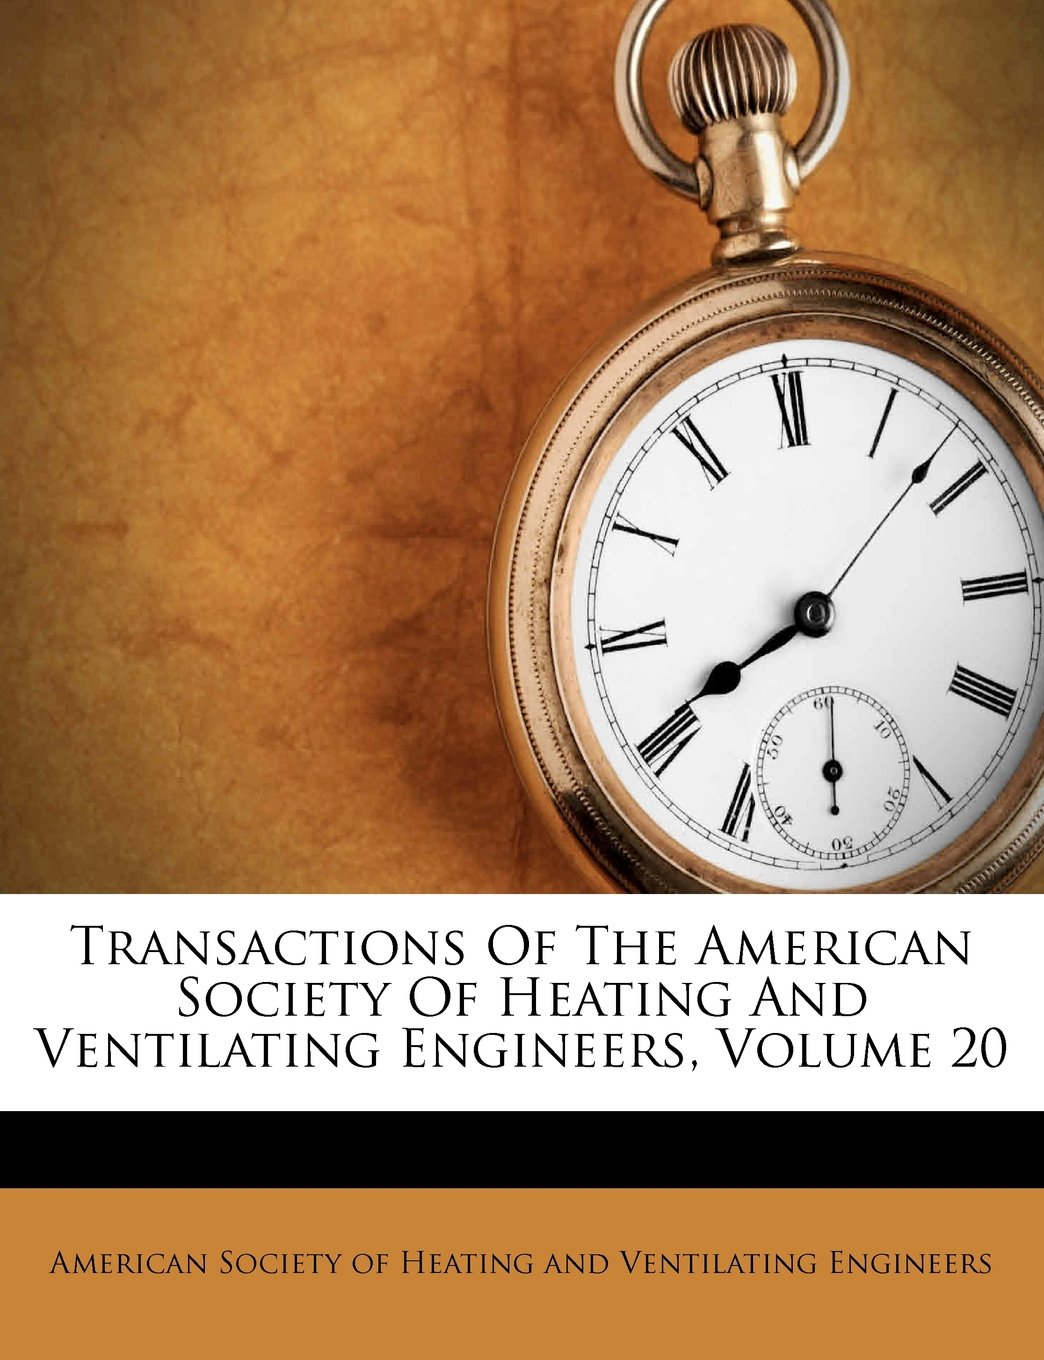 Transactions Of The American Society Of Heating And Ventilating Engineers, Volume 20 pdf